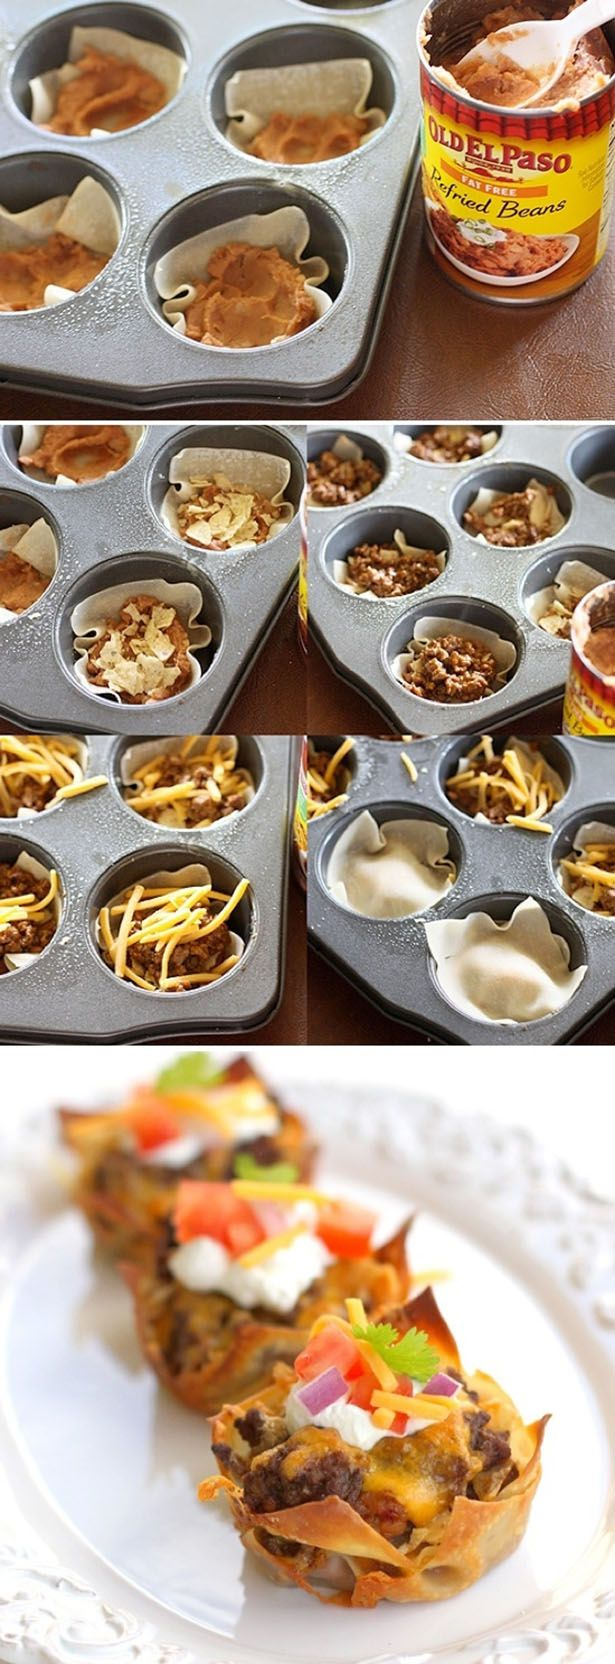 Muffin Tin Recipes - OMG Cute Things